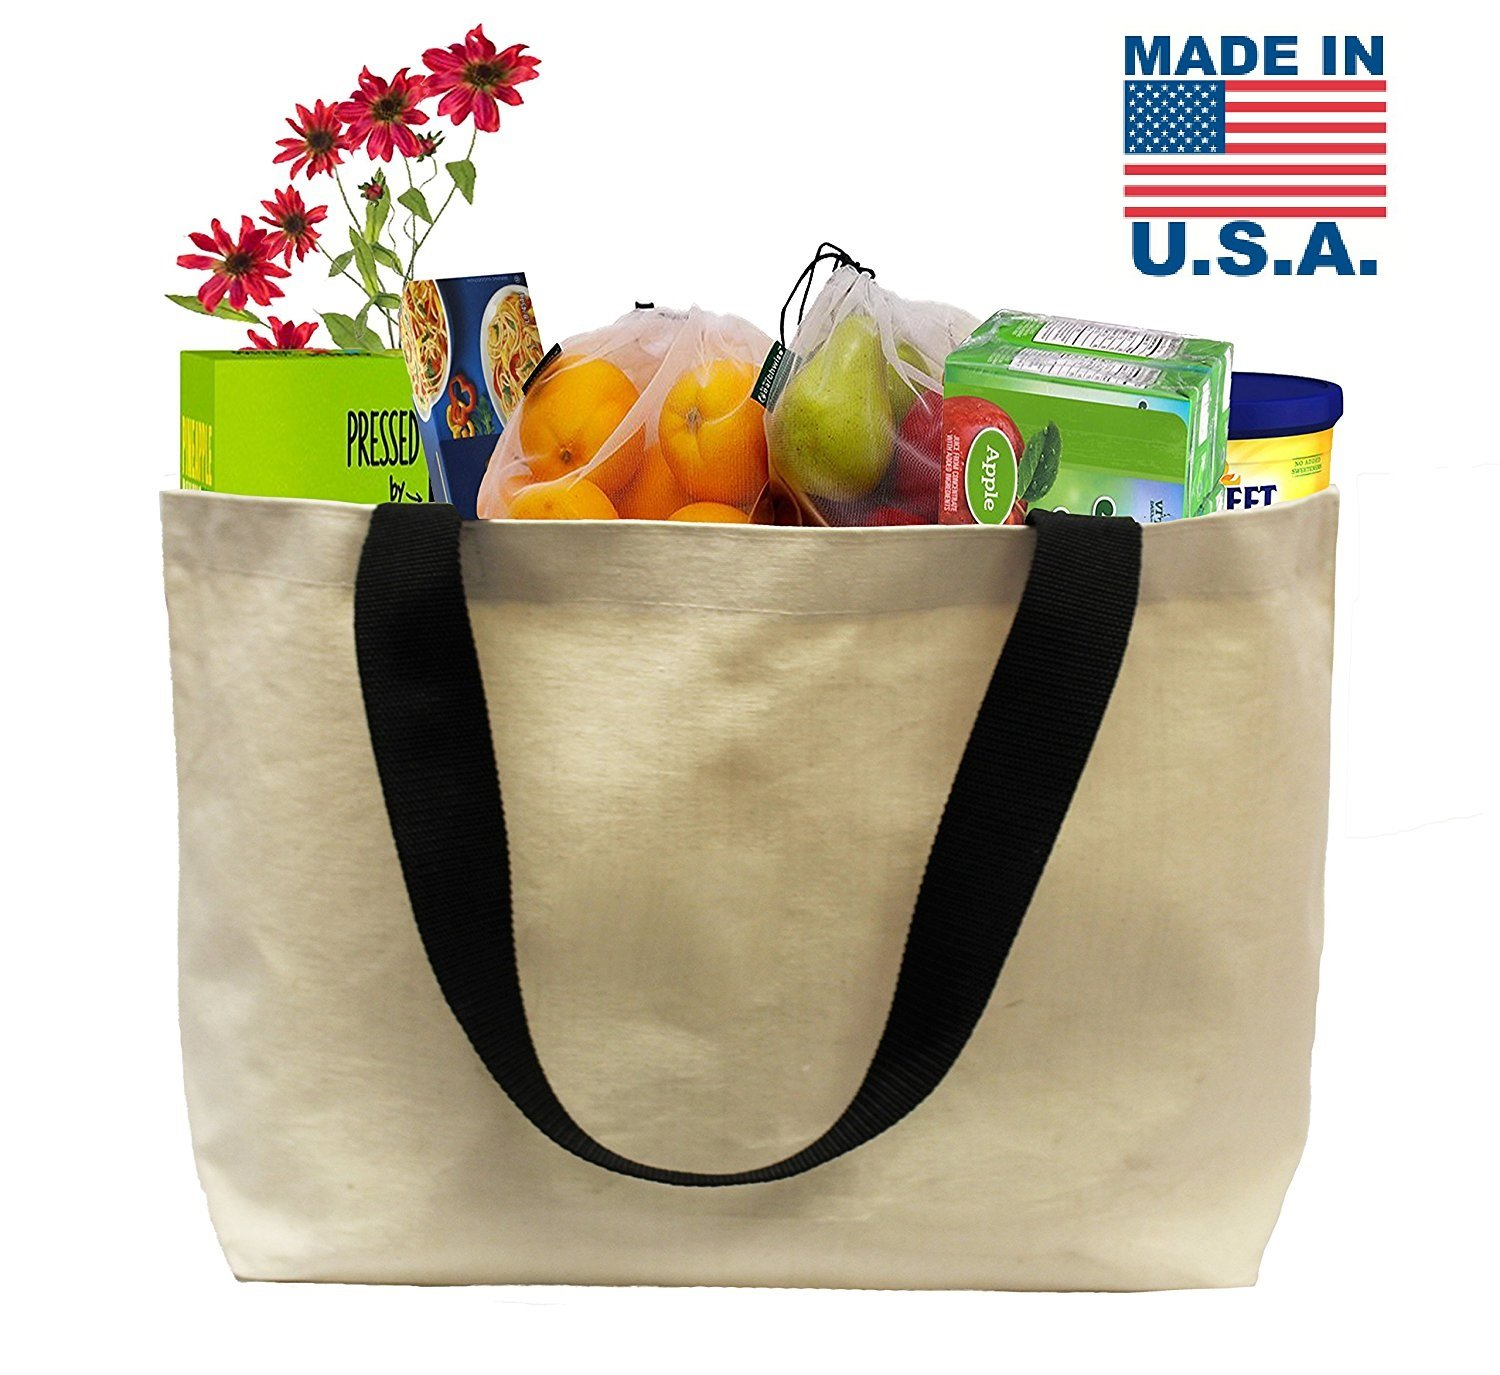 Earthwise EXTRA LARGE Grocery Bag Beach Shopping Tote HEAVY DUTY 12 oz Cotton Canvas Multi Purpose 22'' x 15'' PROUDLY MADE IN THE USA